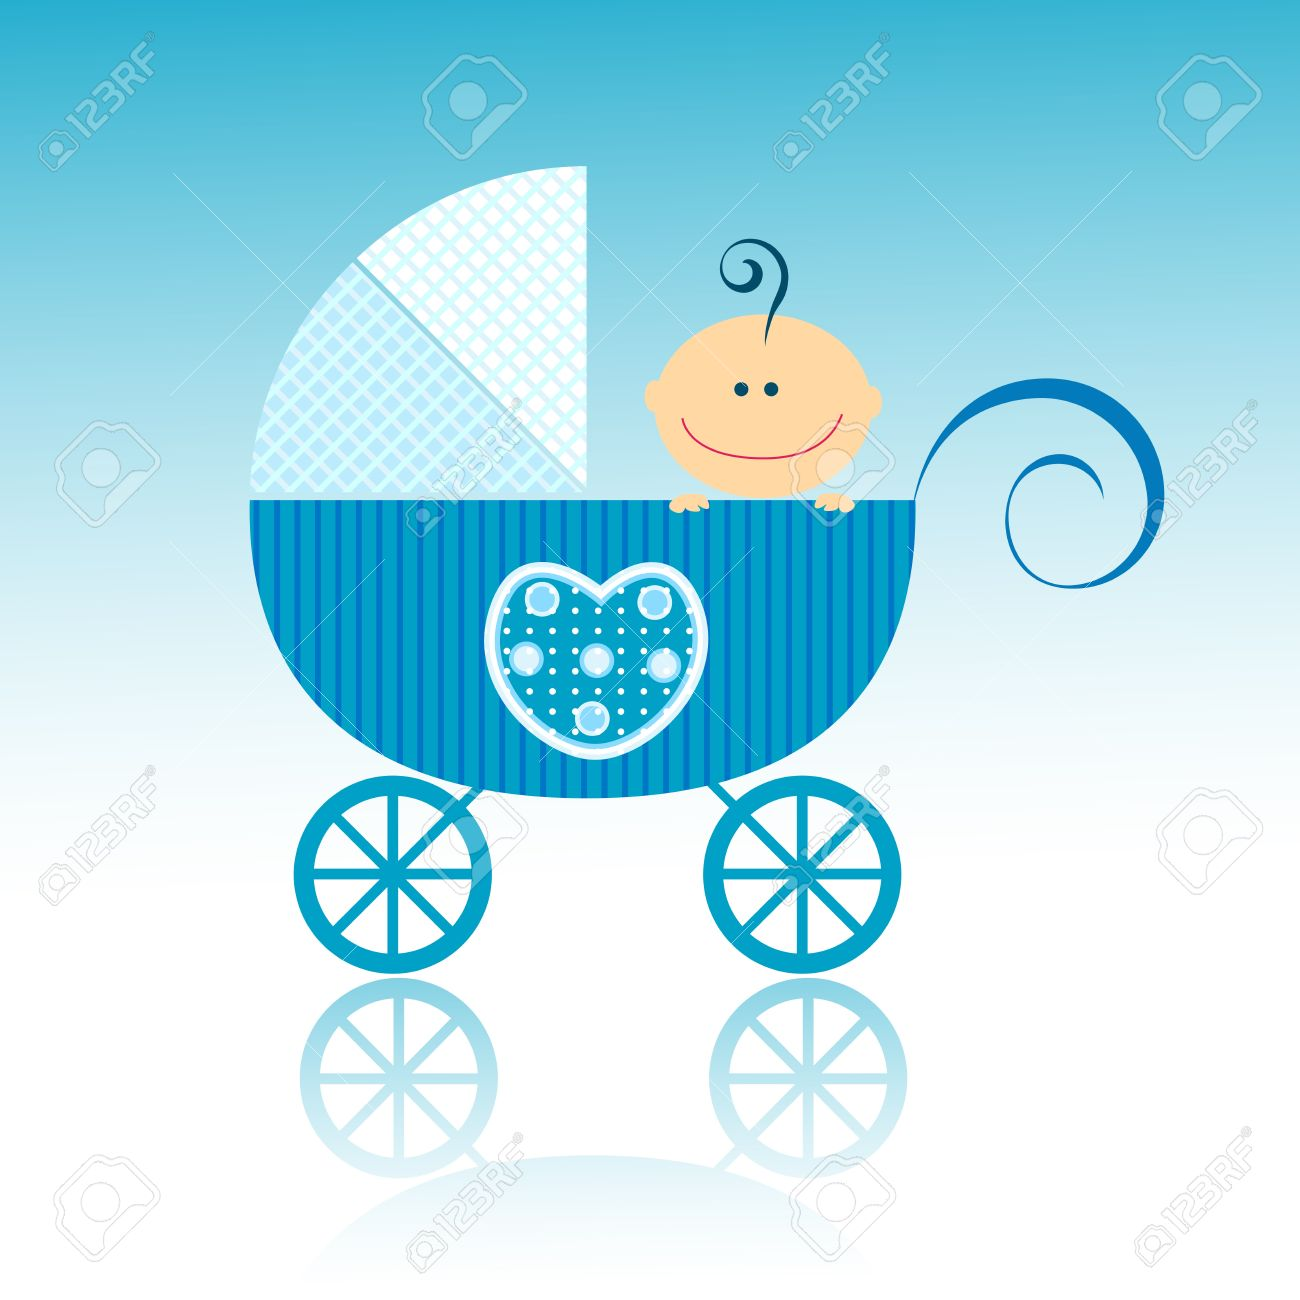 baby arrival design, baby boy in his little carriage stock photobaby arrival design, baby boy in his little carriage stock photo 8913283